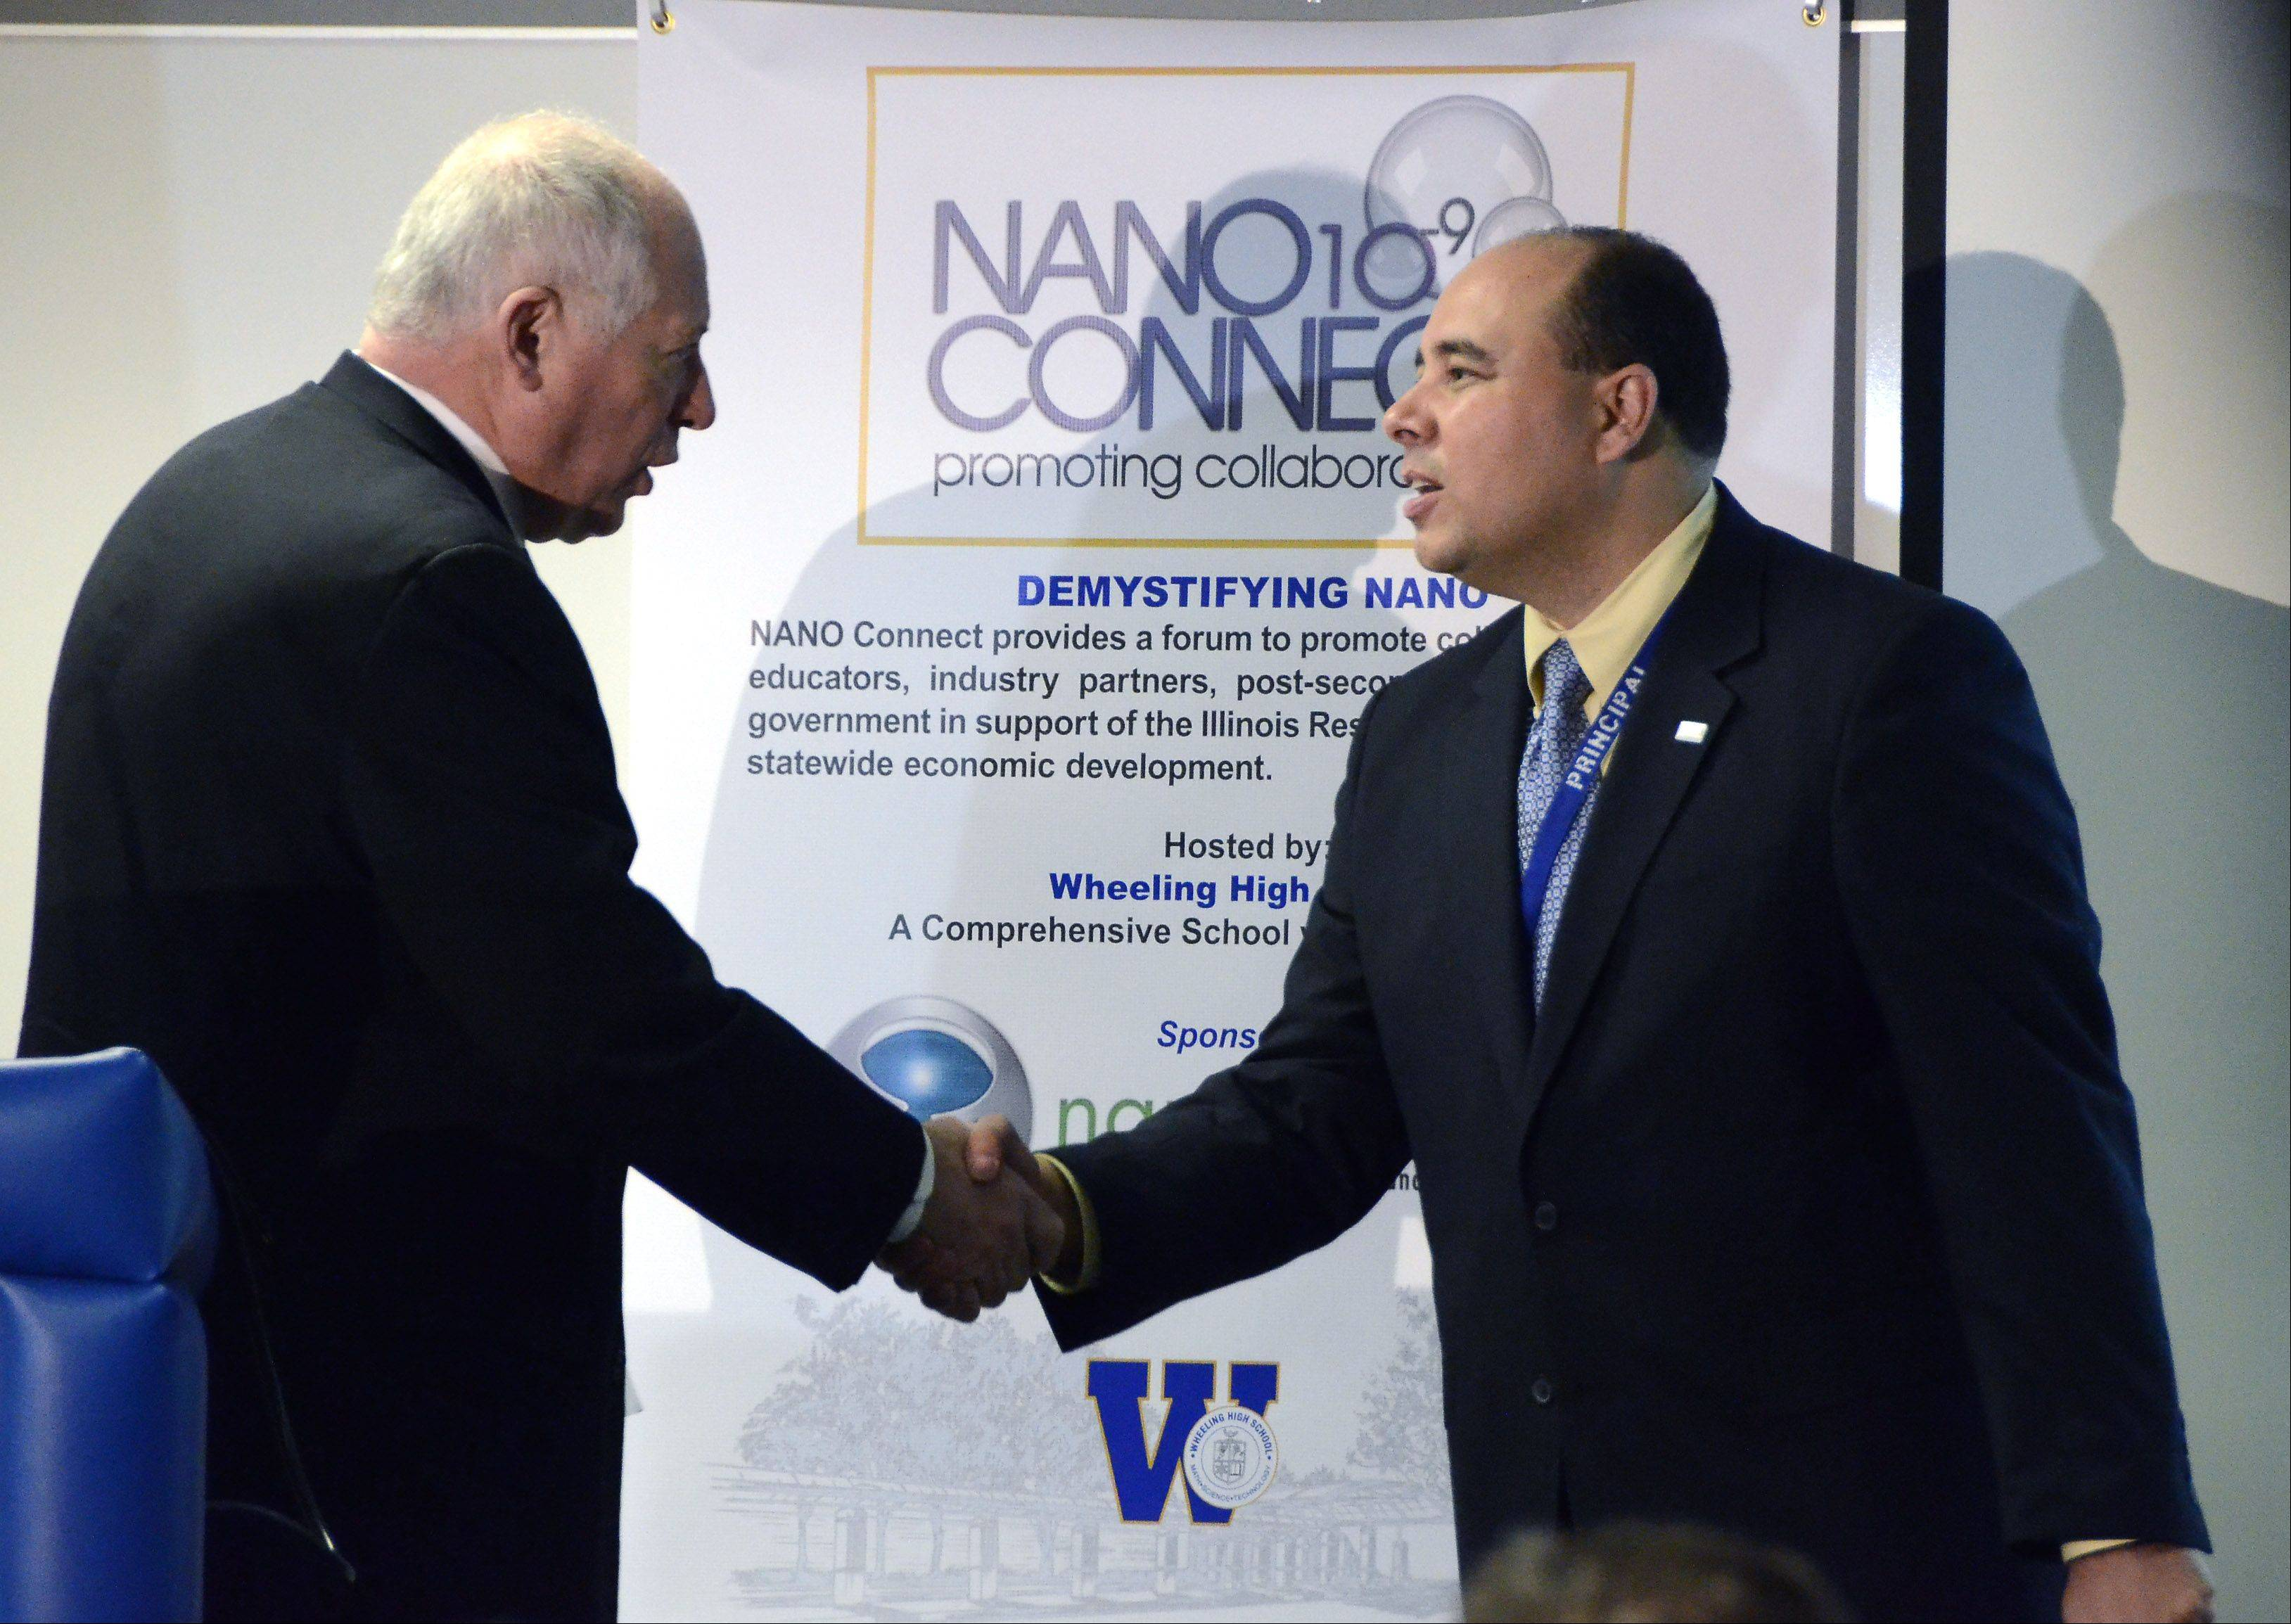 Gov. Pat Quinn, left, thanks Wheeling High School Principal Lazaro Lopez for his work on incorporating STEM educations into the high school's curriculum.